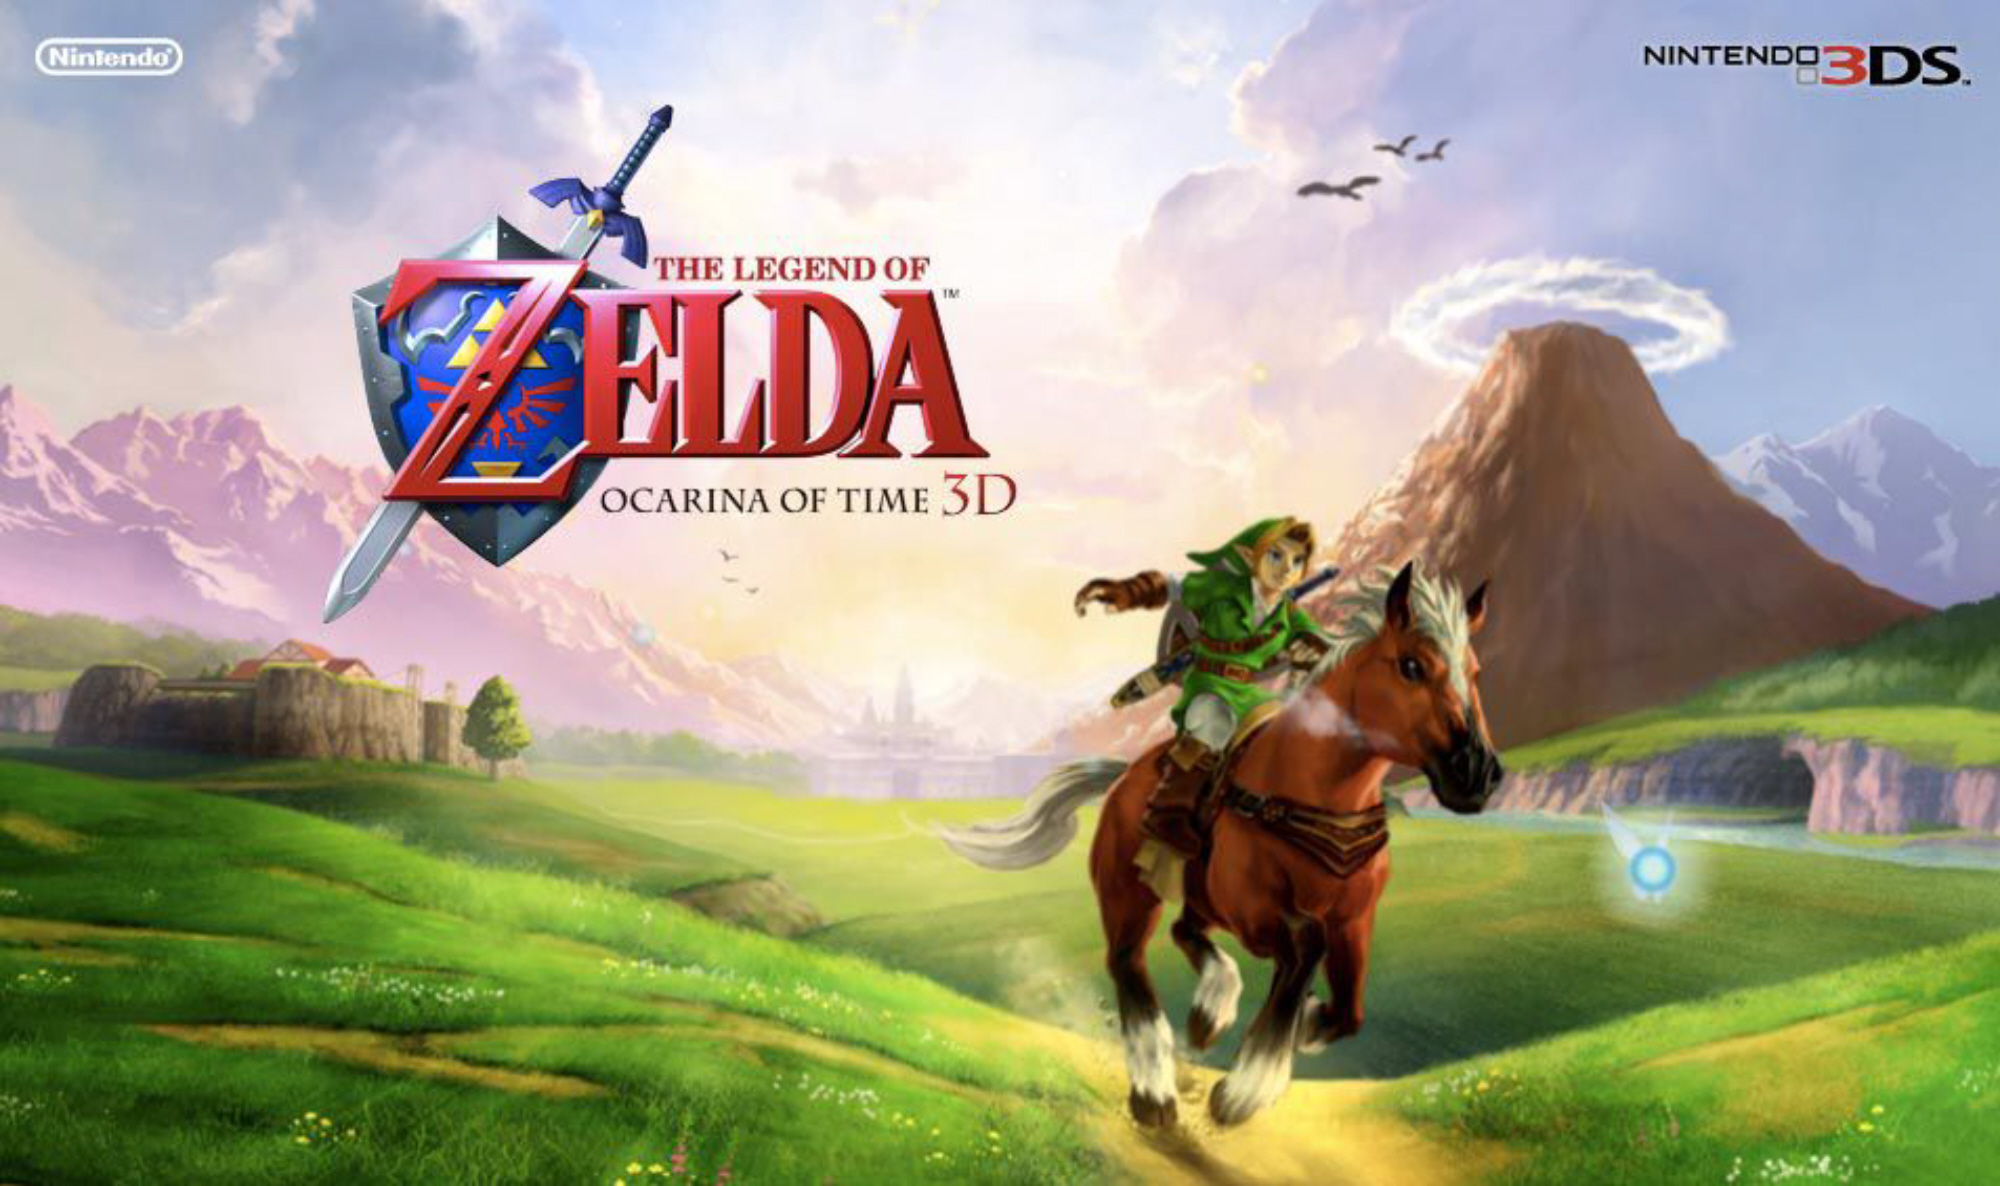 The Legend that Never Ages: The Legend of Zelda: Ocarina of